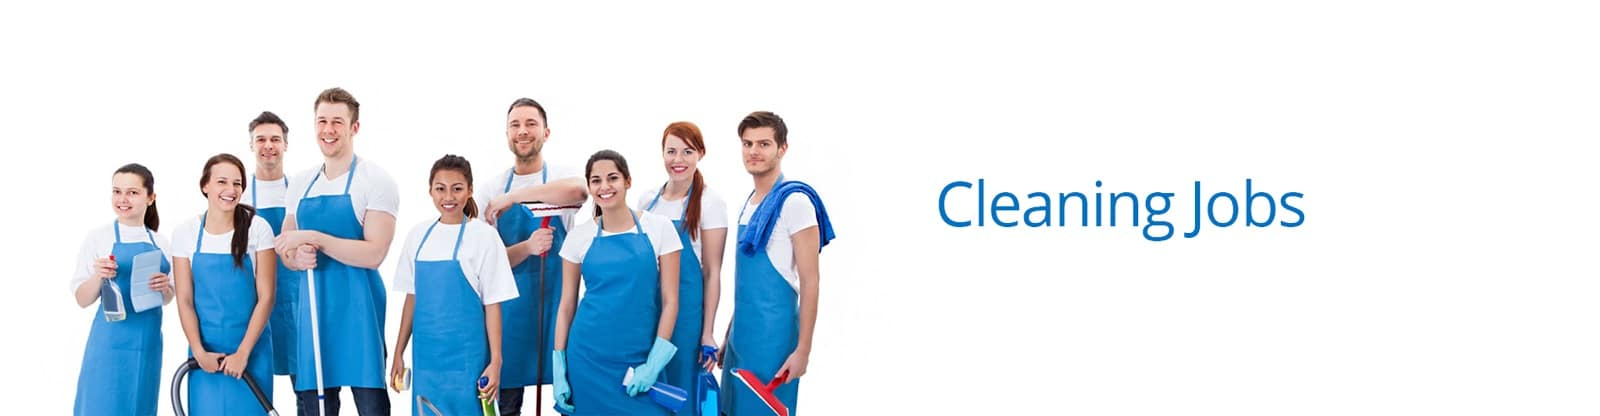 Cleaning jobs We have cleaning jobs available across the UK